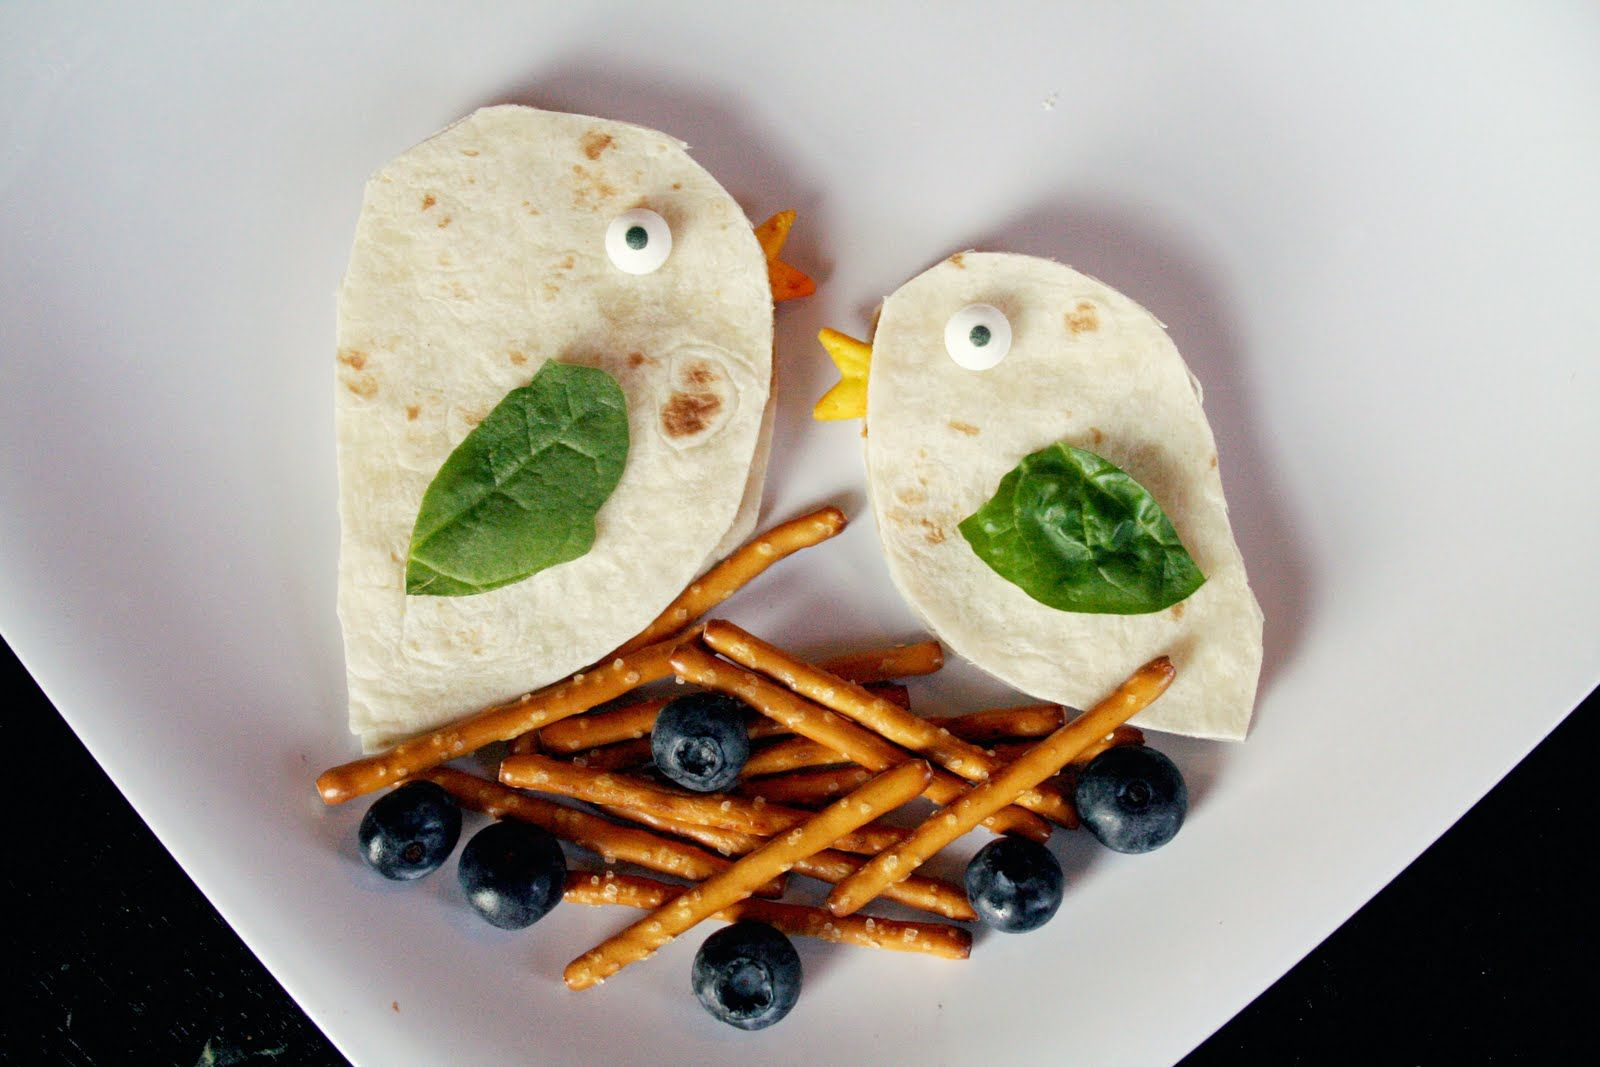 Made this lunch plate for bean the other day and when i shared it food forumfinder Choice Image